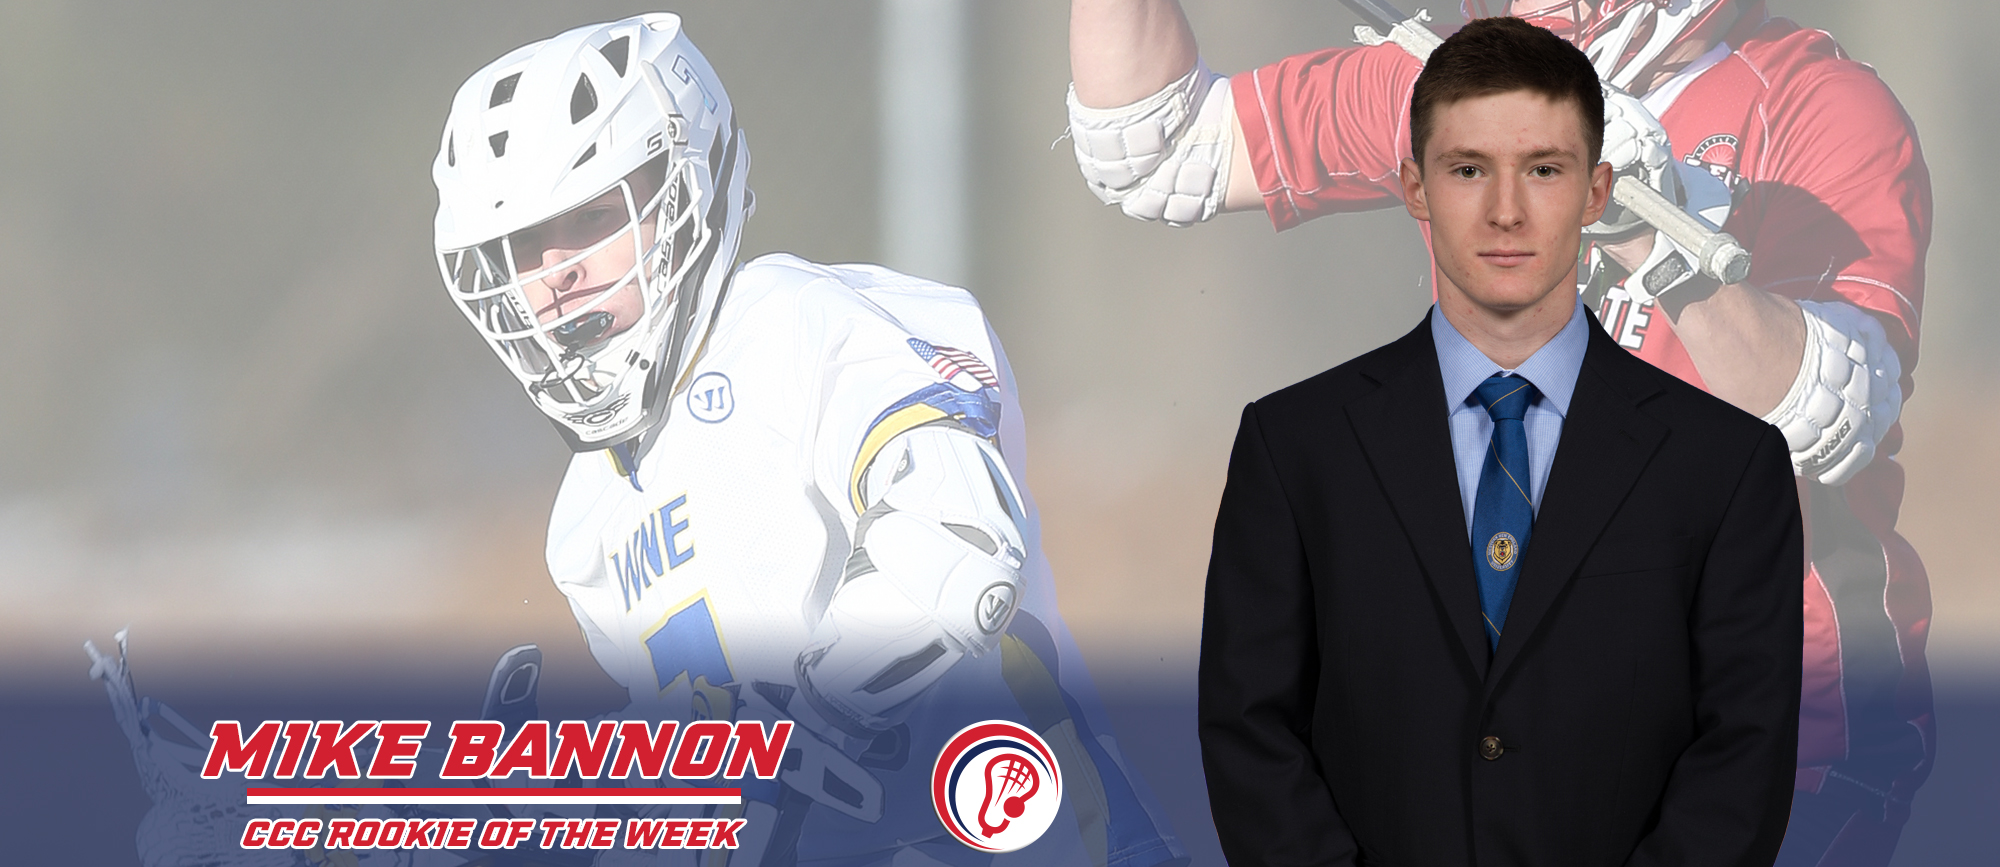 Mike Bannon Receives Third Consecutive CCC Rookie of the Week Award